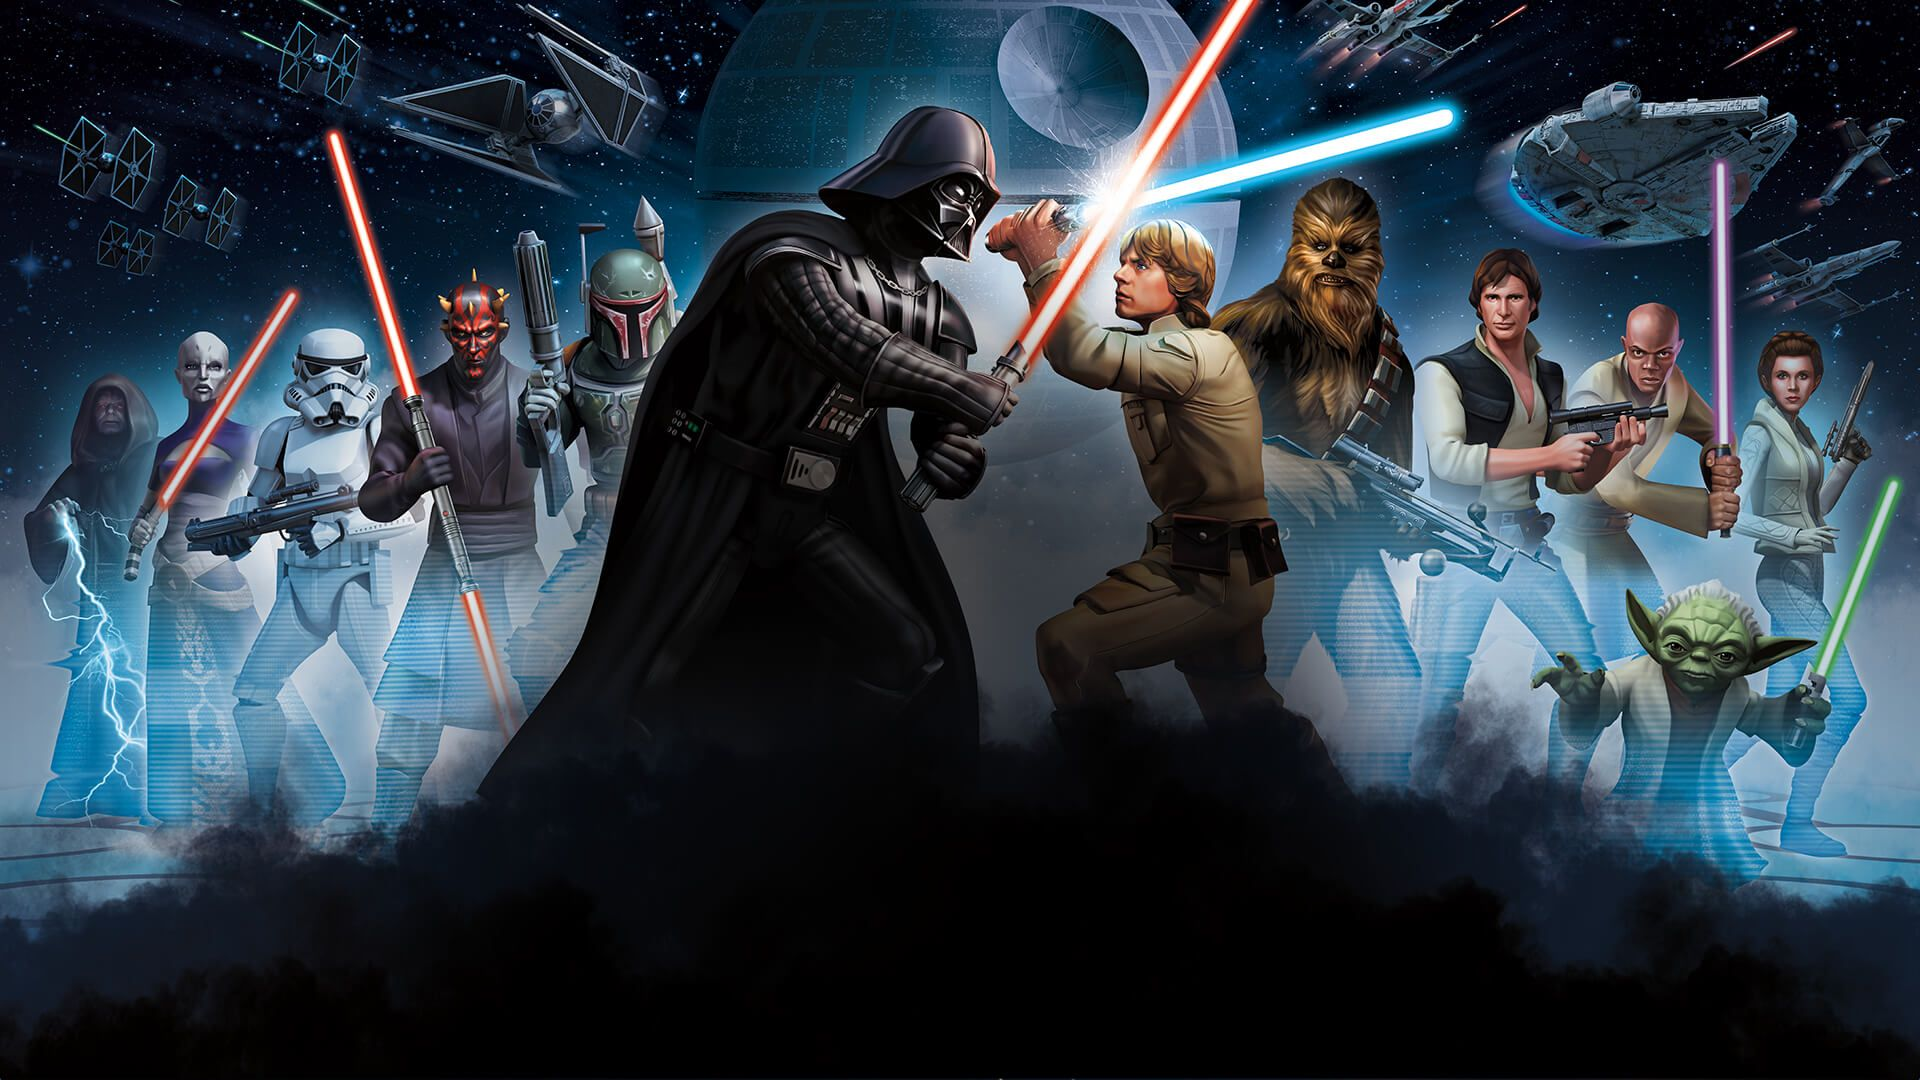 Star Wars Background Hd Posted By Ryan Thompson